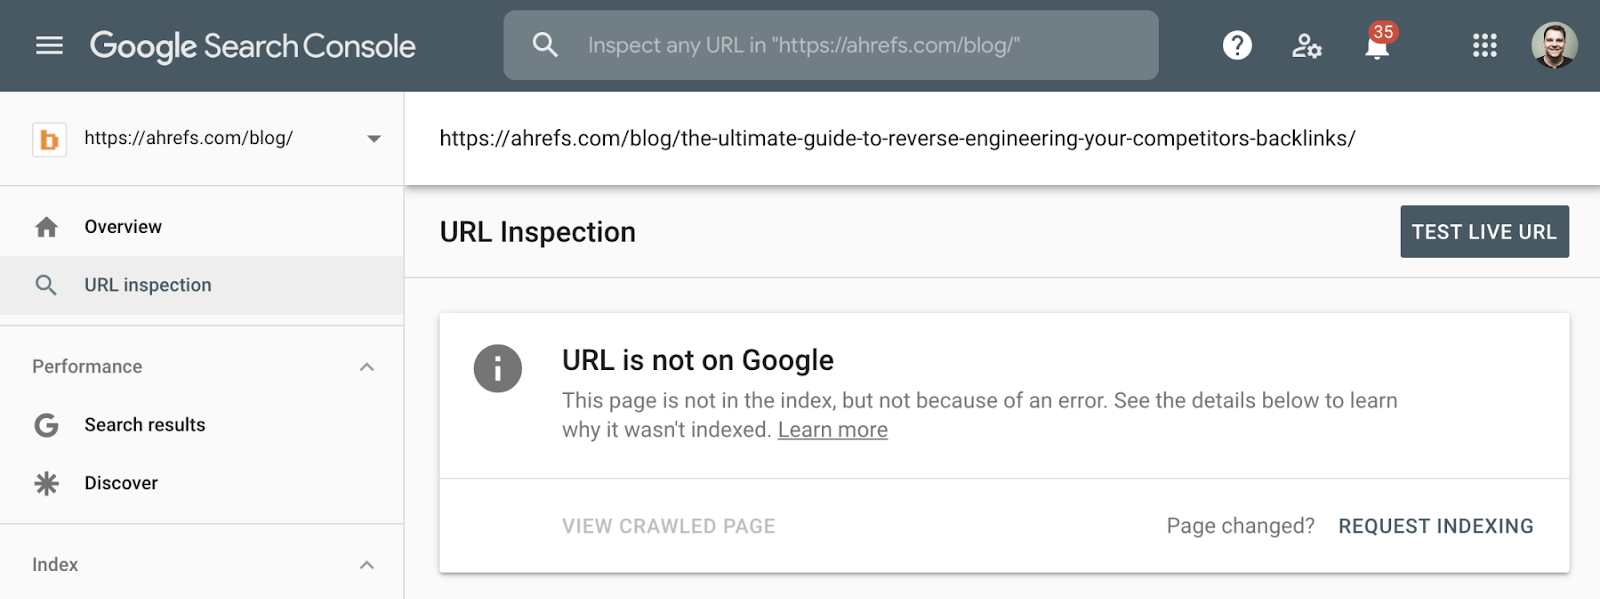 6 url is not on google